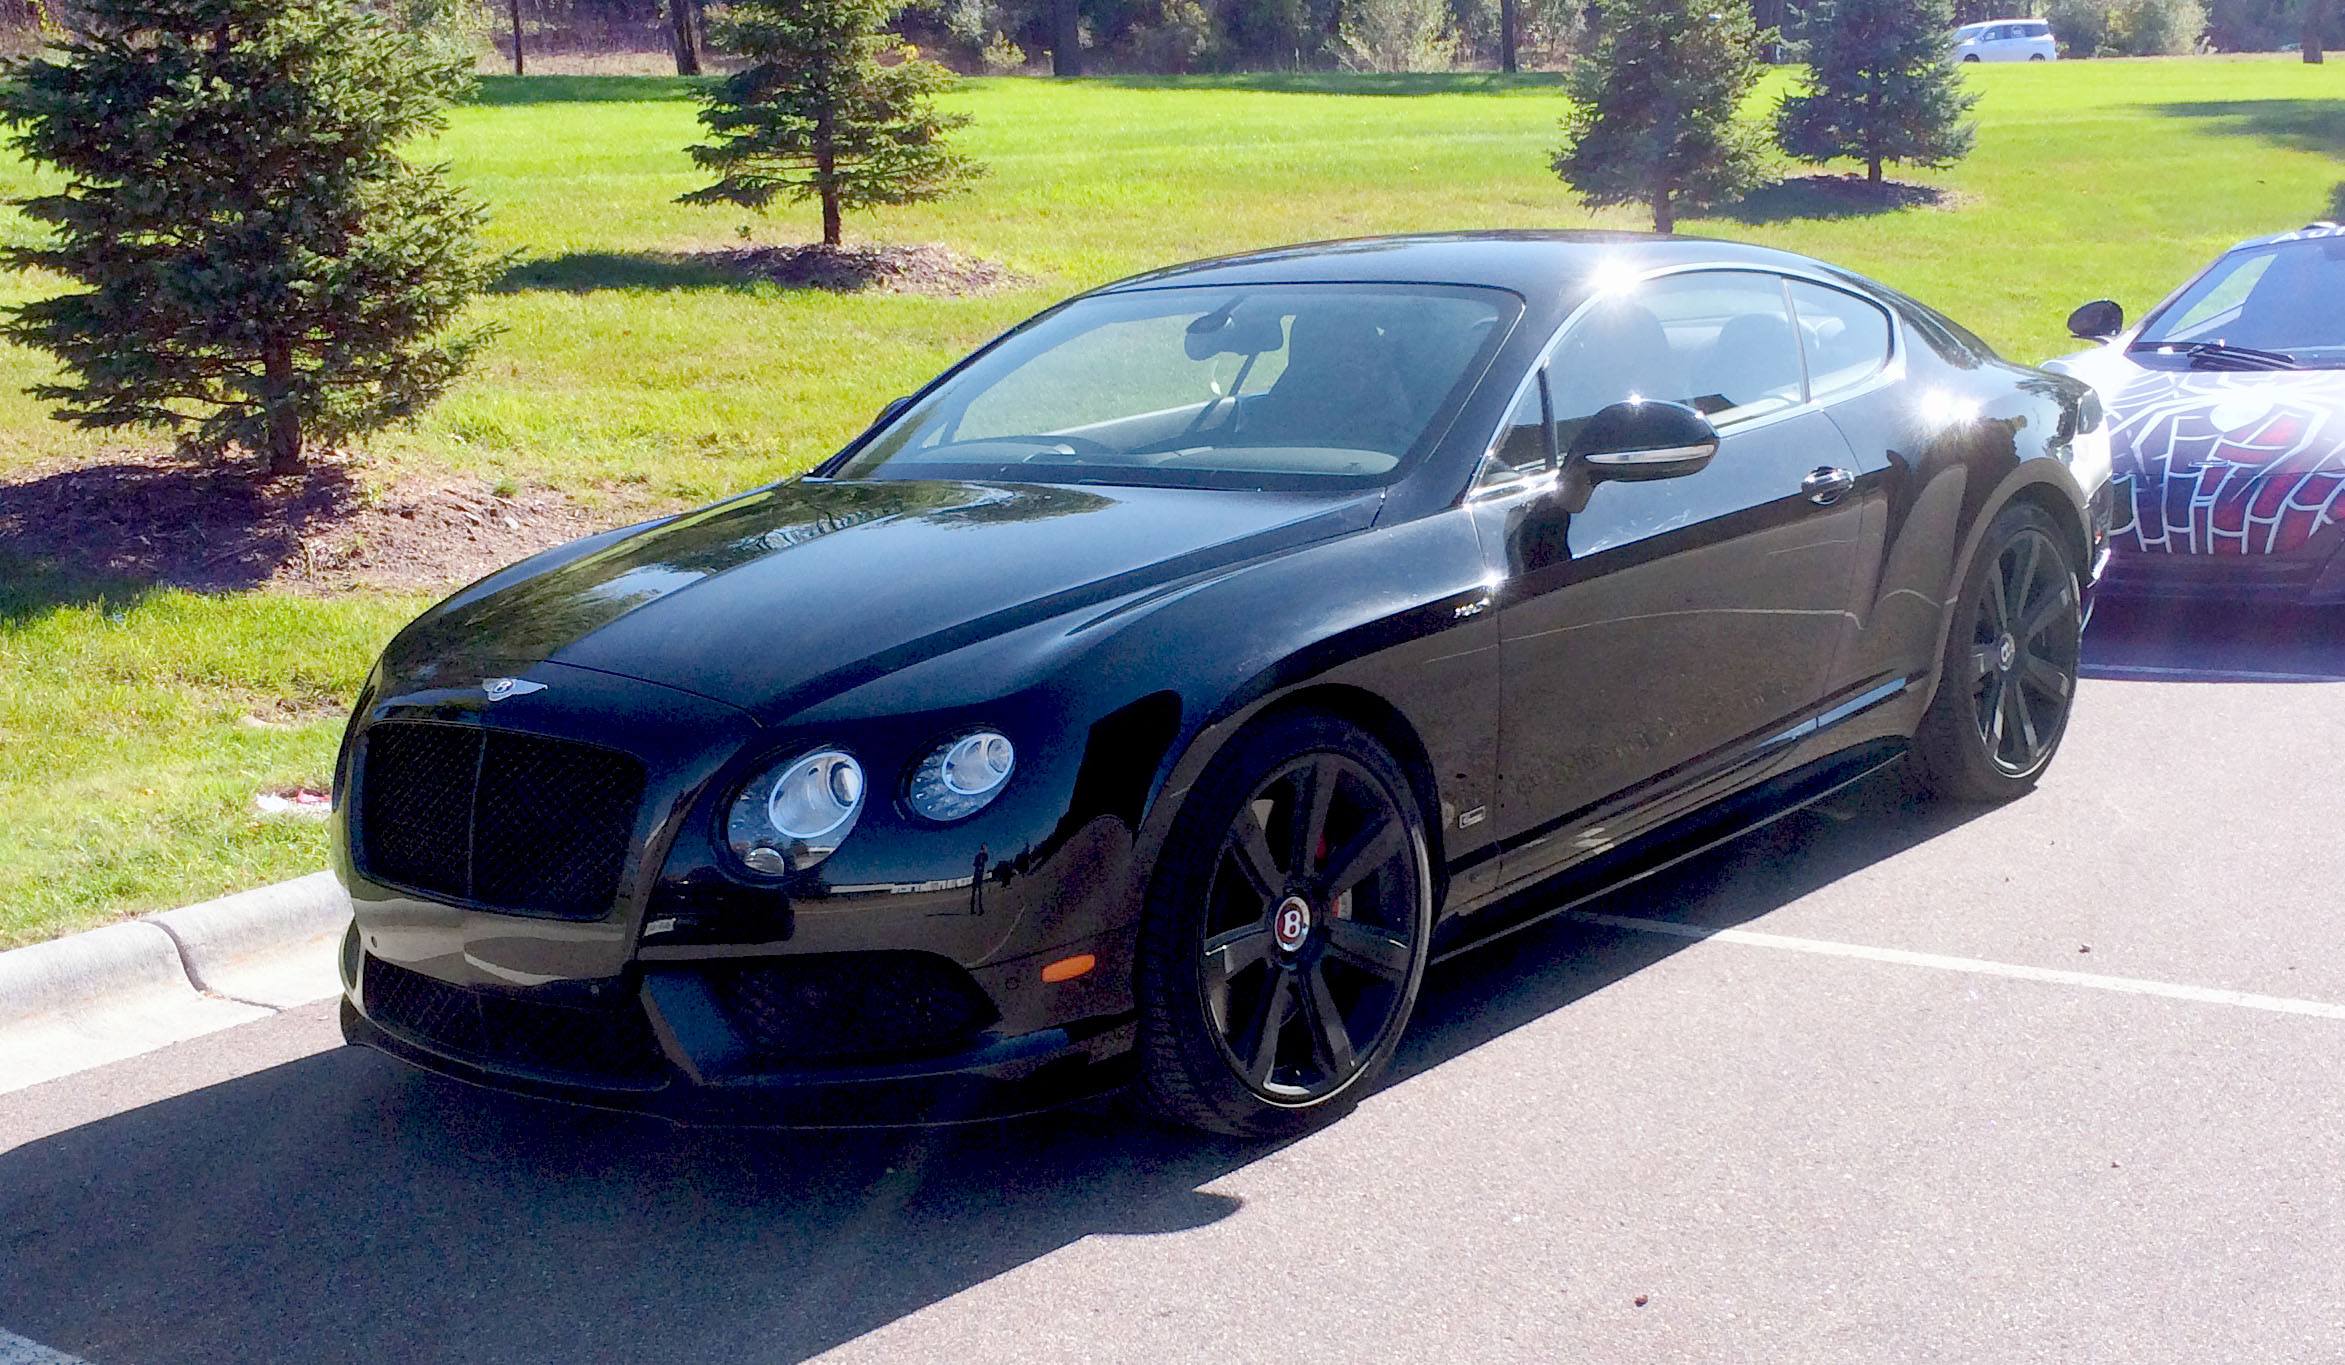 Driving 5 Dream Cars In 1 Day! Part 3 Of 6 – Bentley Continental GT